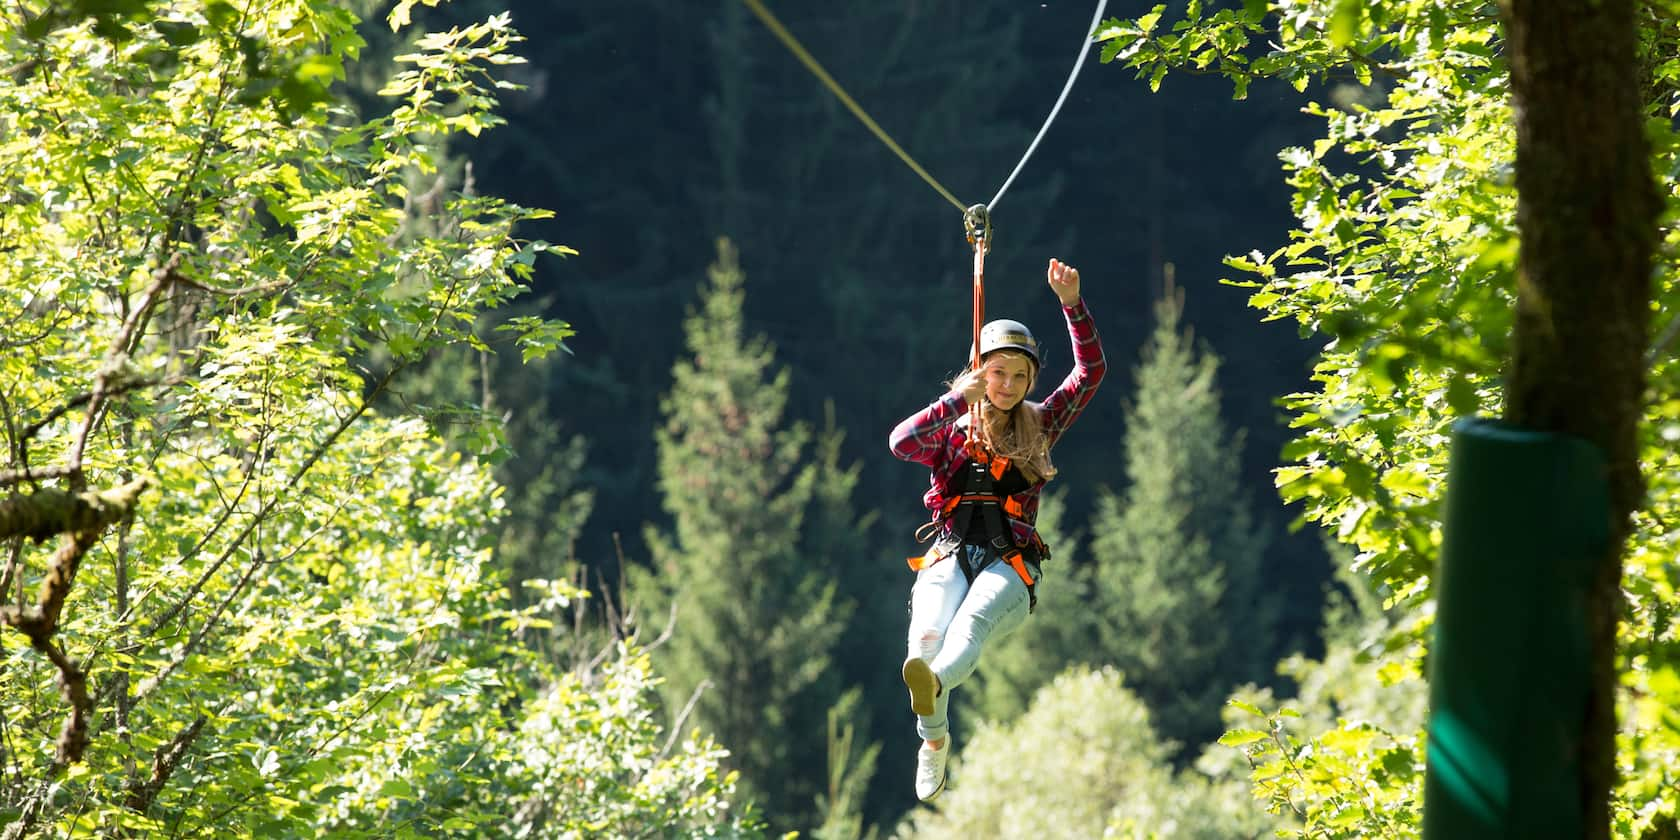 A girl waves as she ziplines through a forest